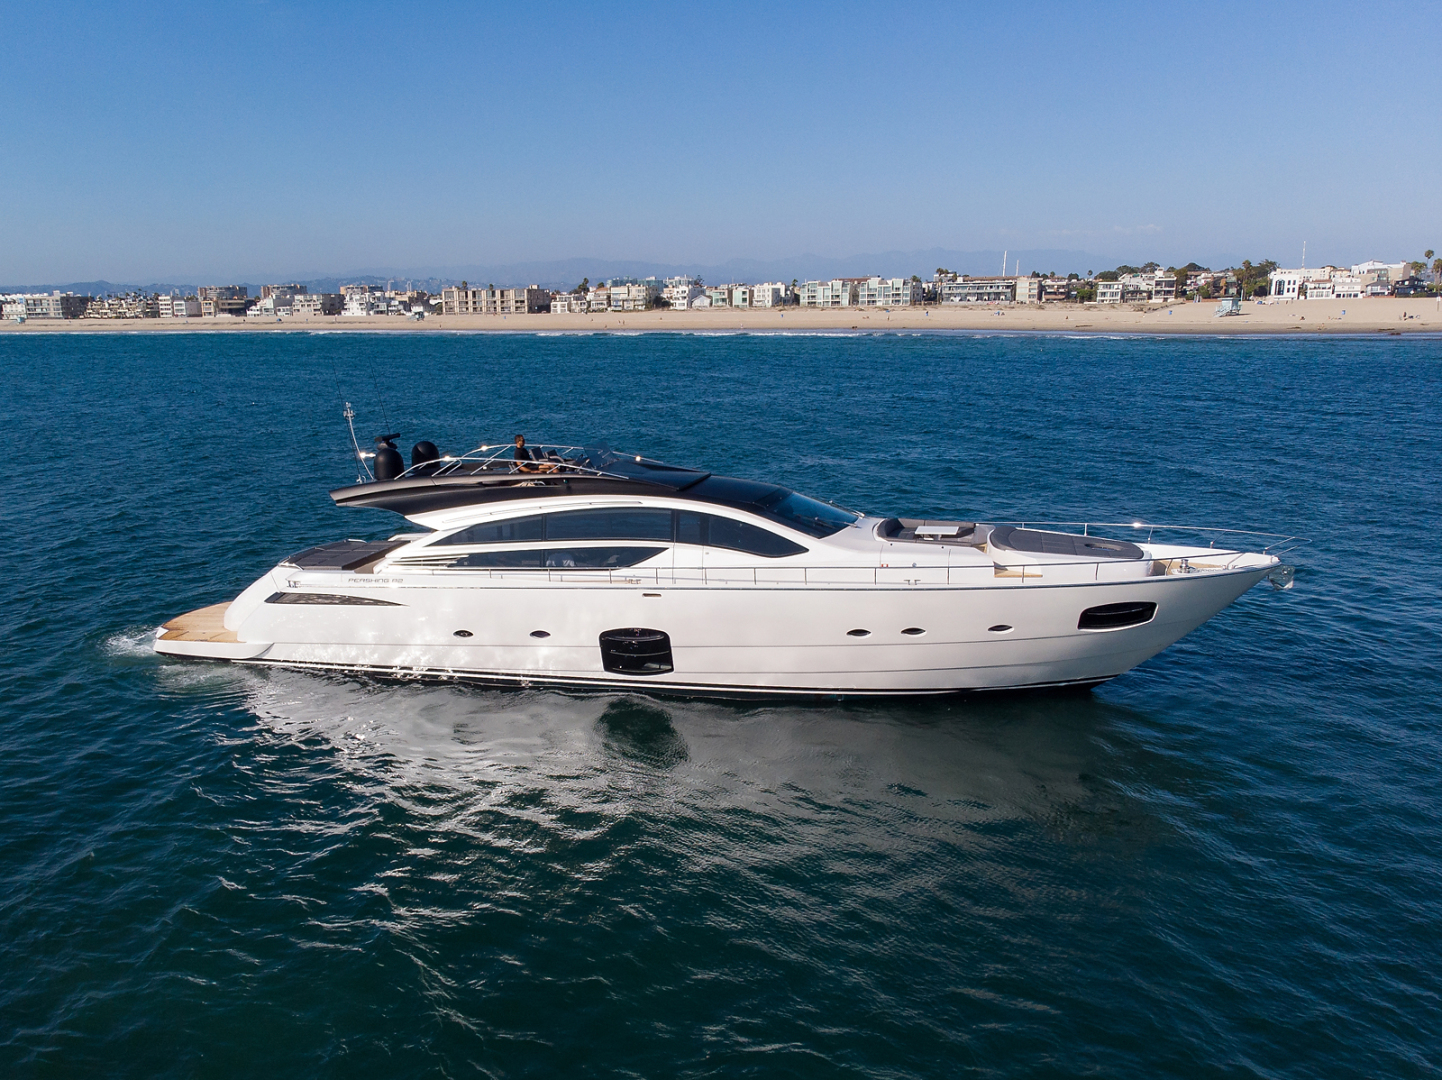 82' Pershing 2017 Pershing 82 Double or Nothing